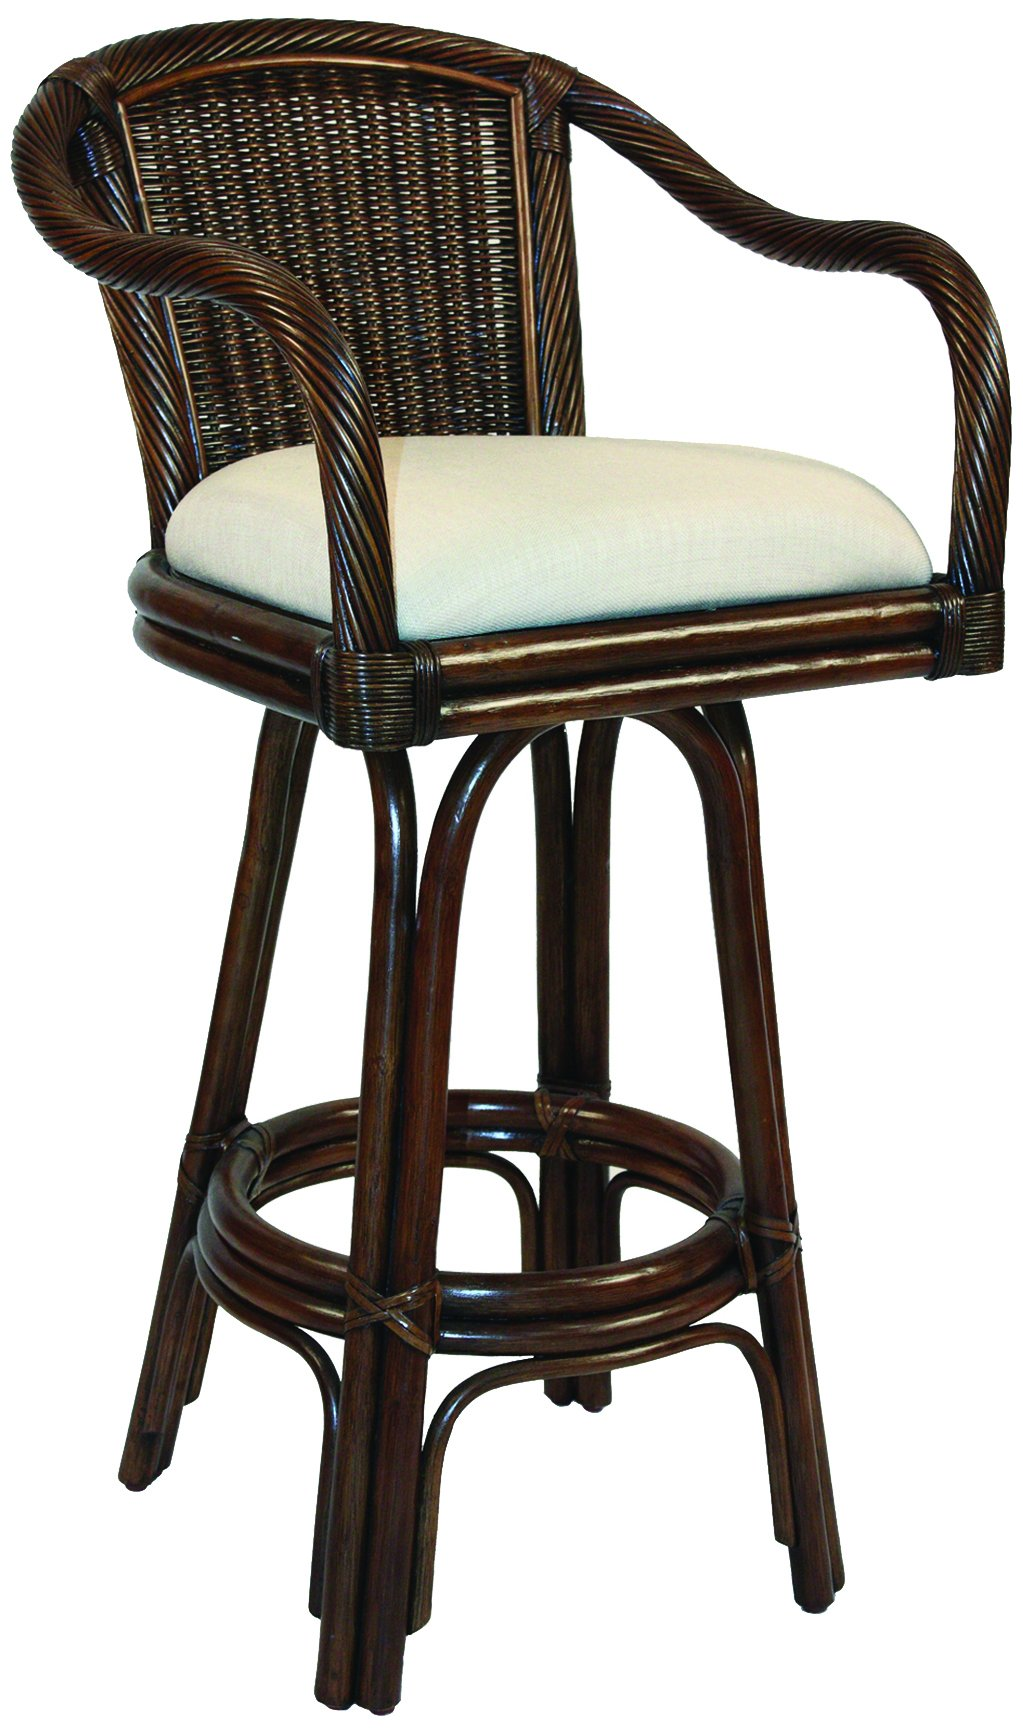 Hospitality Rattan 102-6101-ATQ-C Key West Indoor Swivel Rattan & Wicker Counter Stool, 24'', Sunbrella Canvas Spa